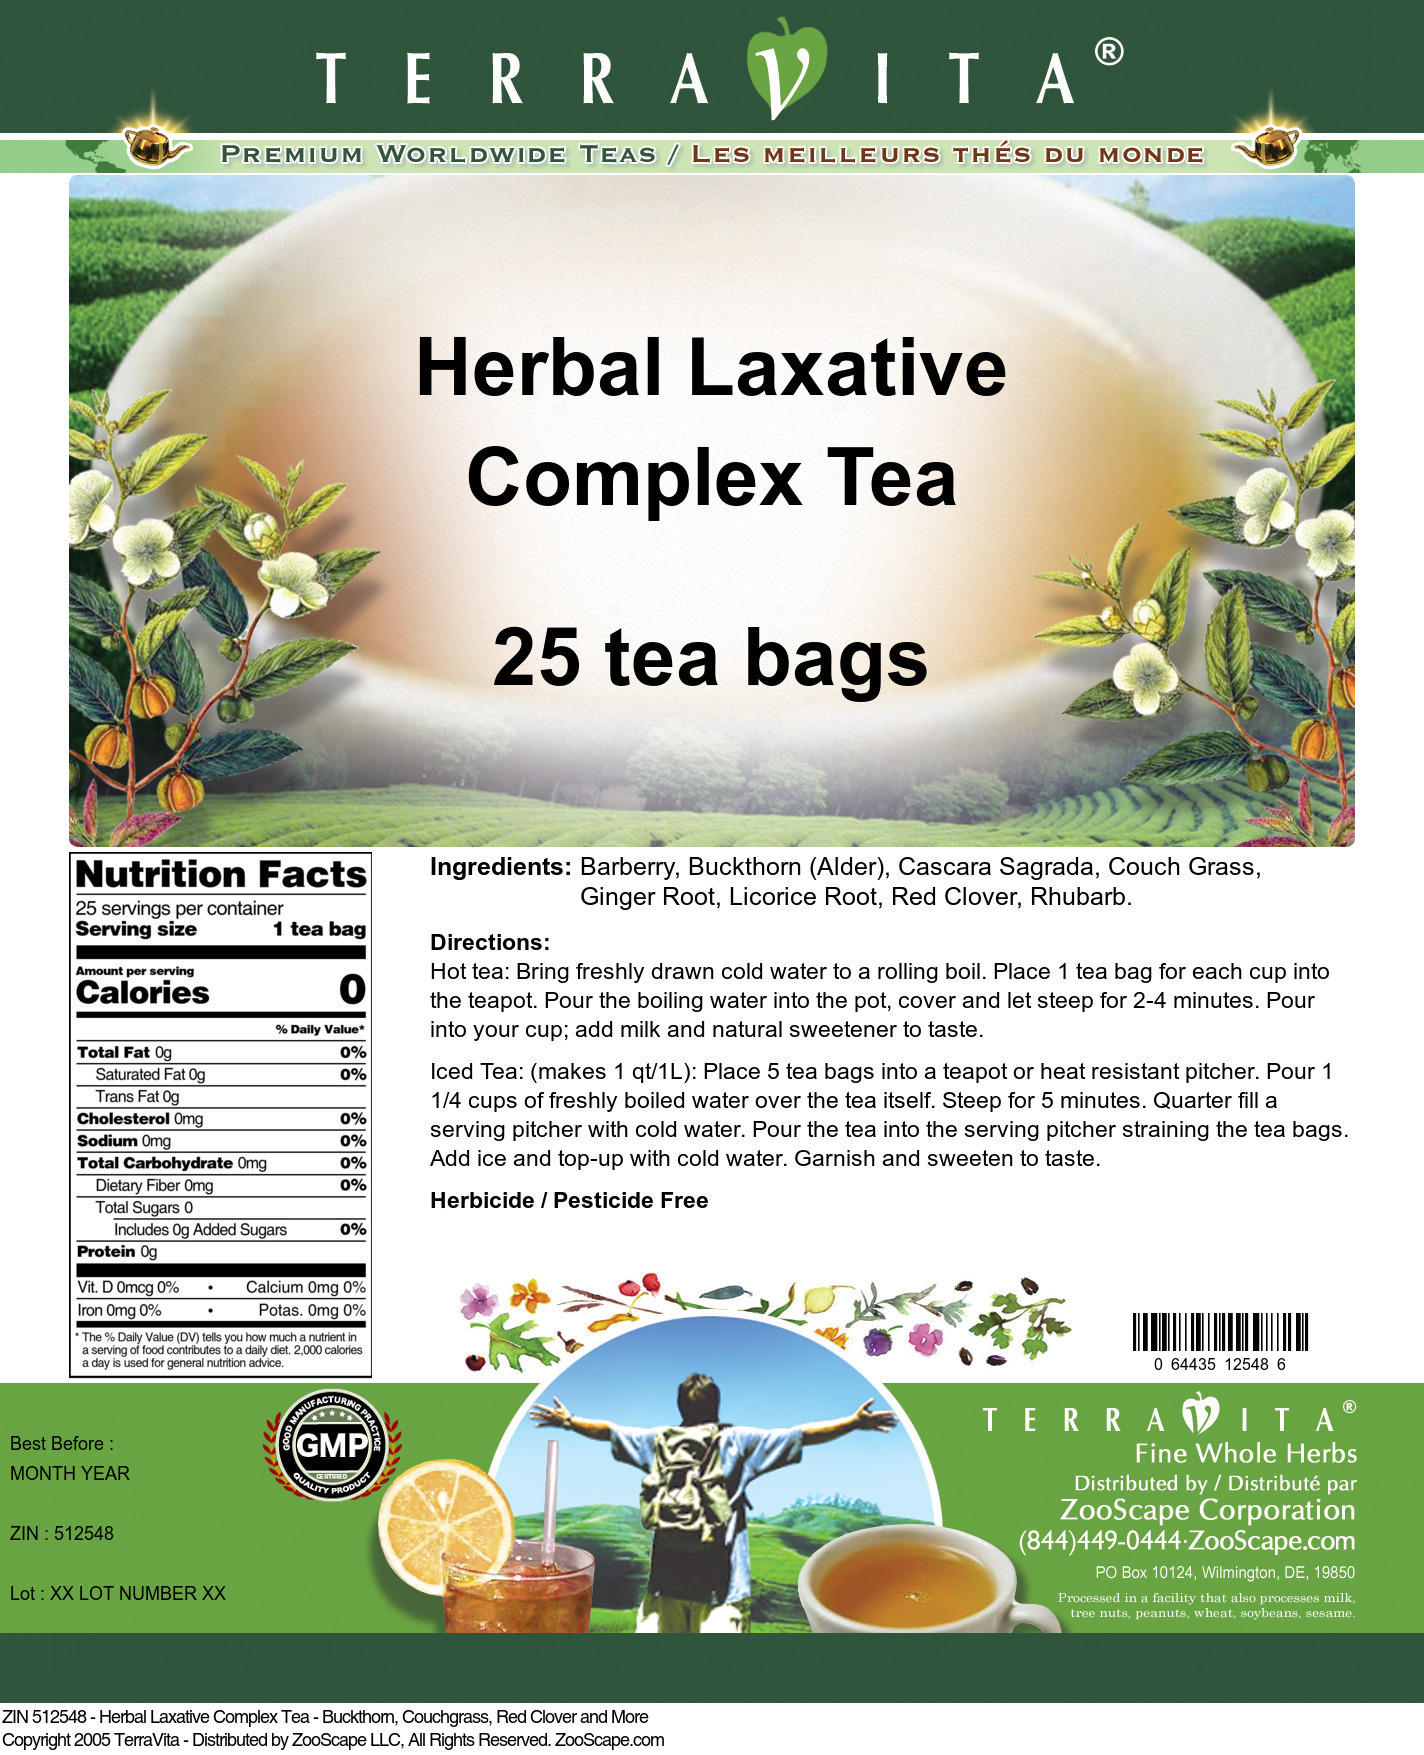 Herbal Laxative Complex Tea - Buckthorn, Couchgrass, Red Clover and More